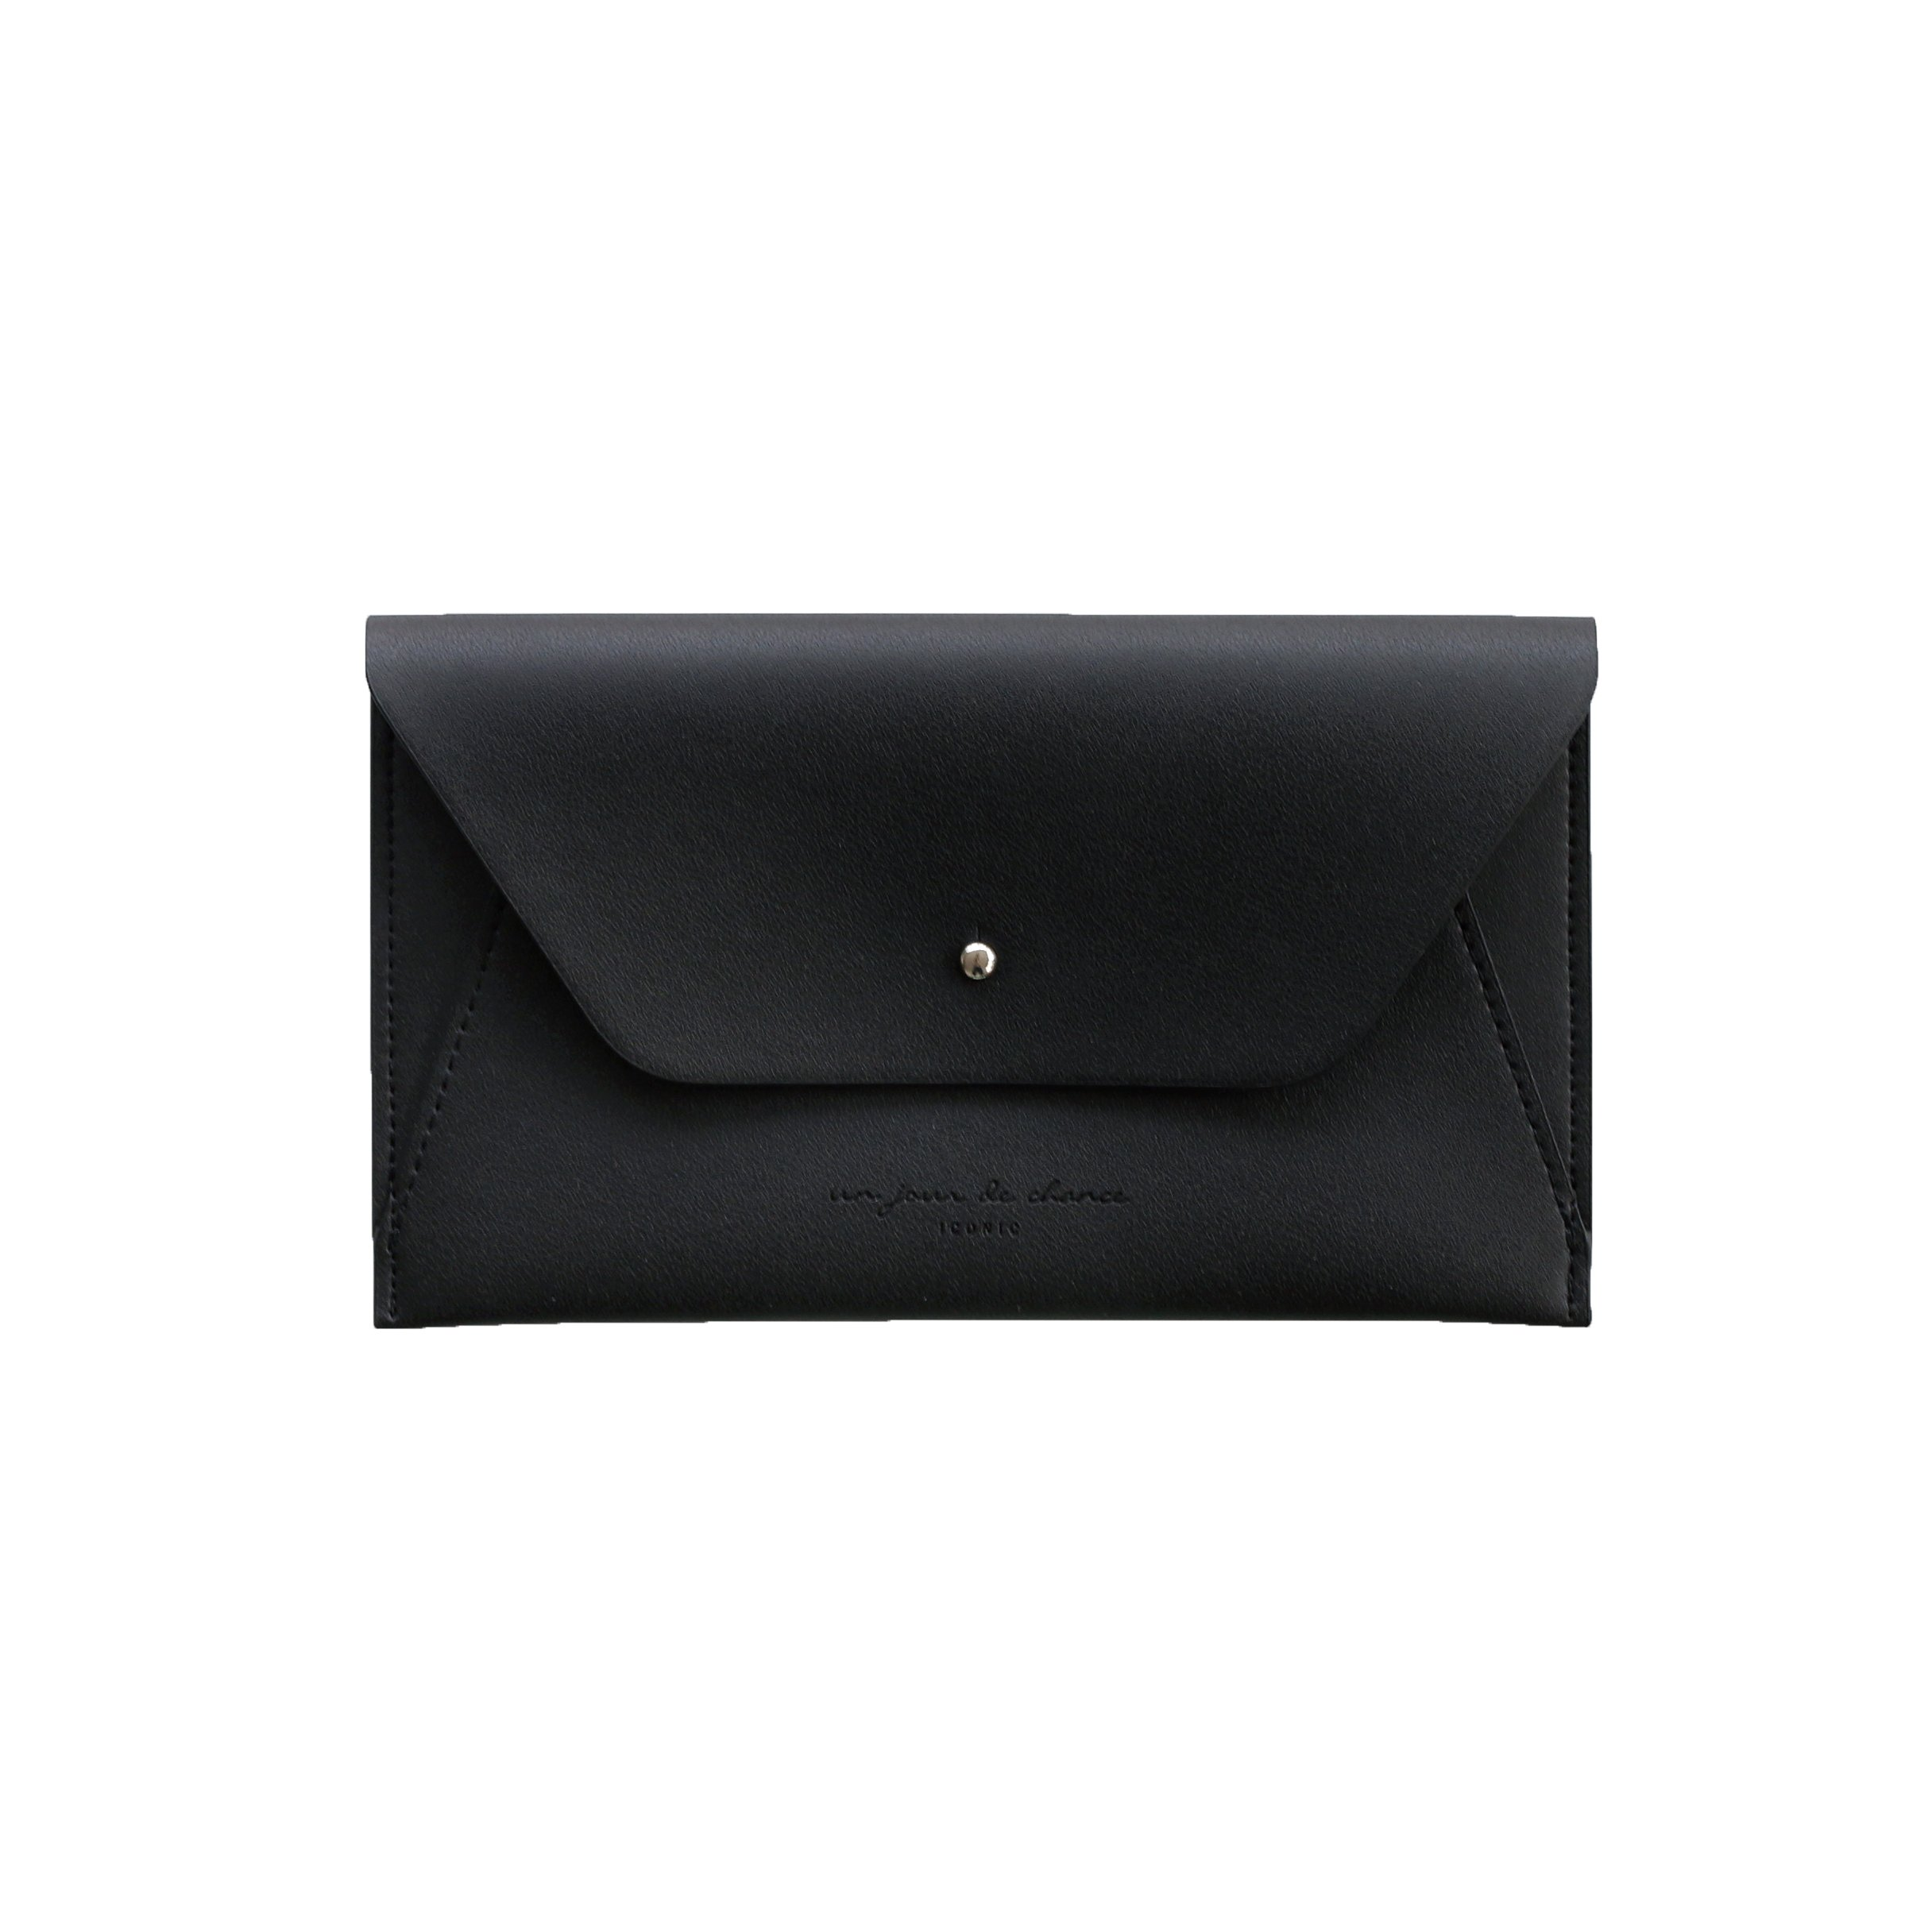 Travel Wallet, ICONIC Wallet Pouch, Minimalist Simple Leather Purse for Men and Women, Black